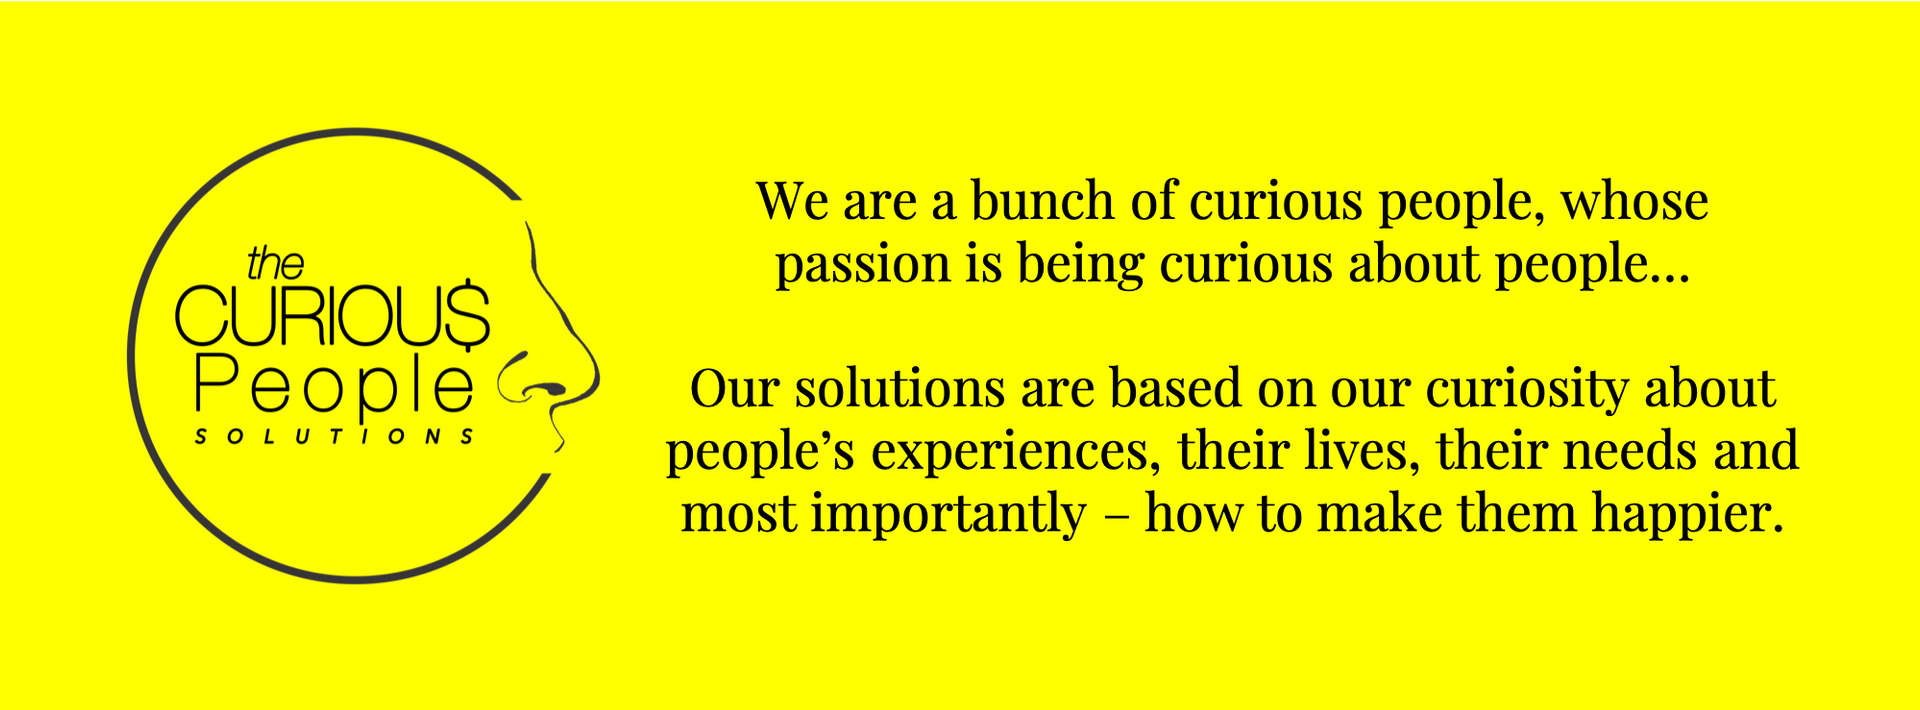 We are a bunch of curious people...